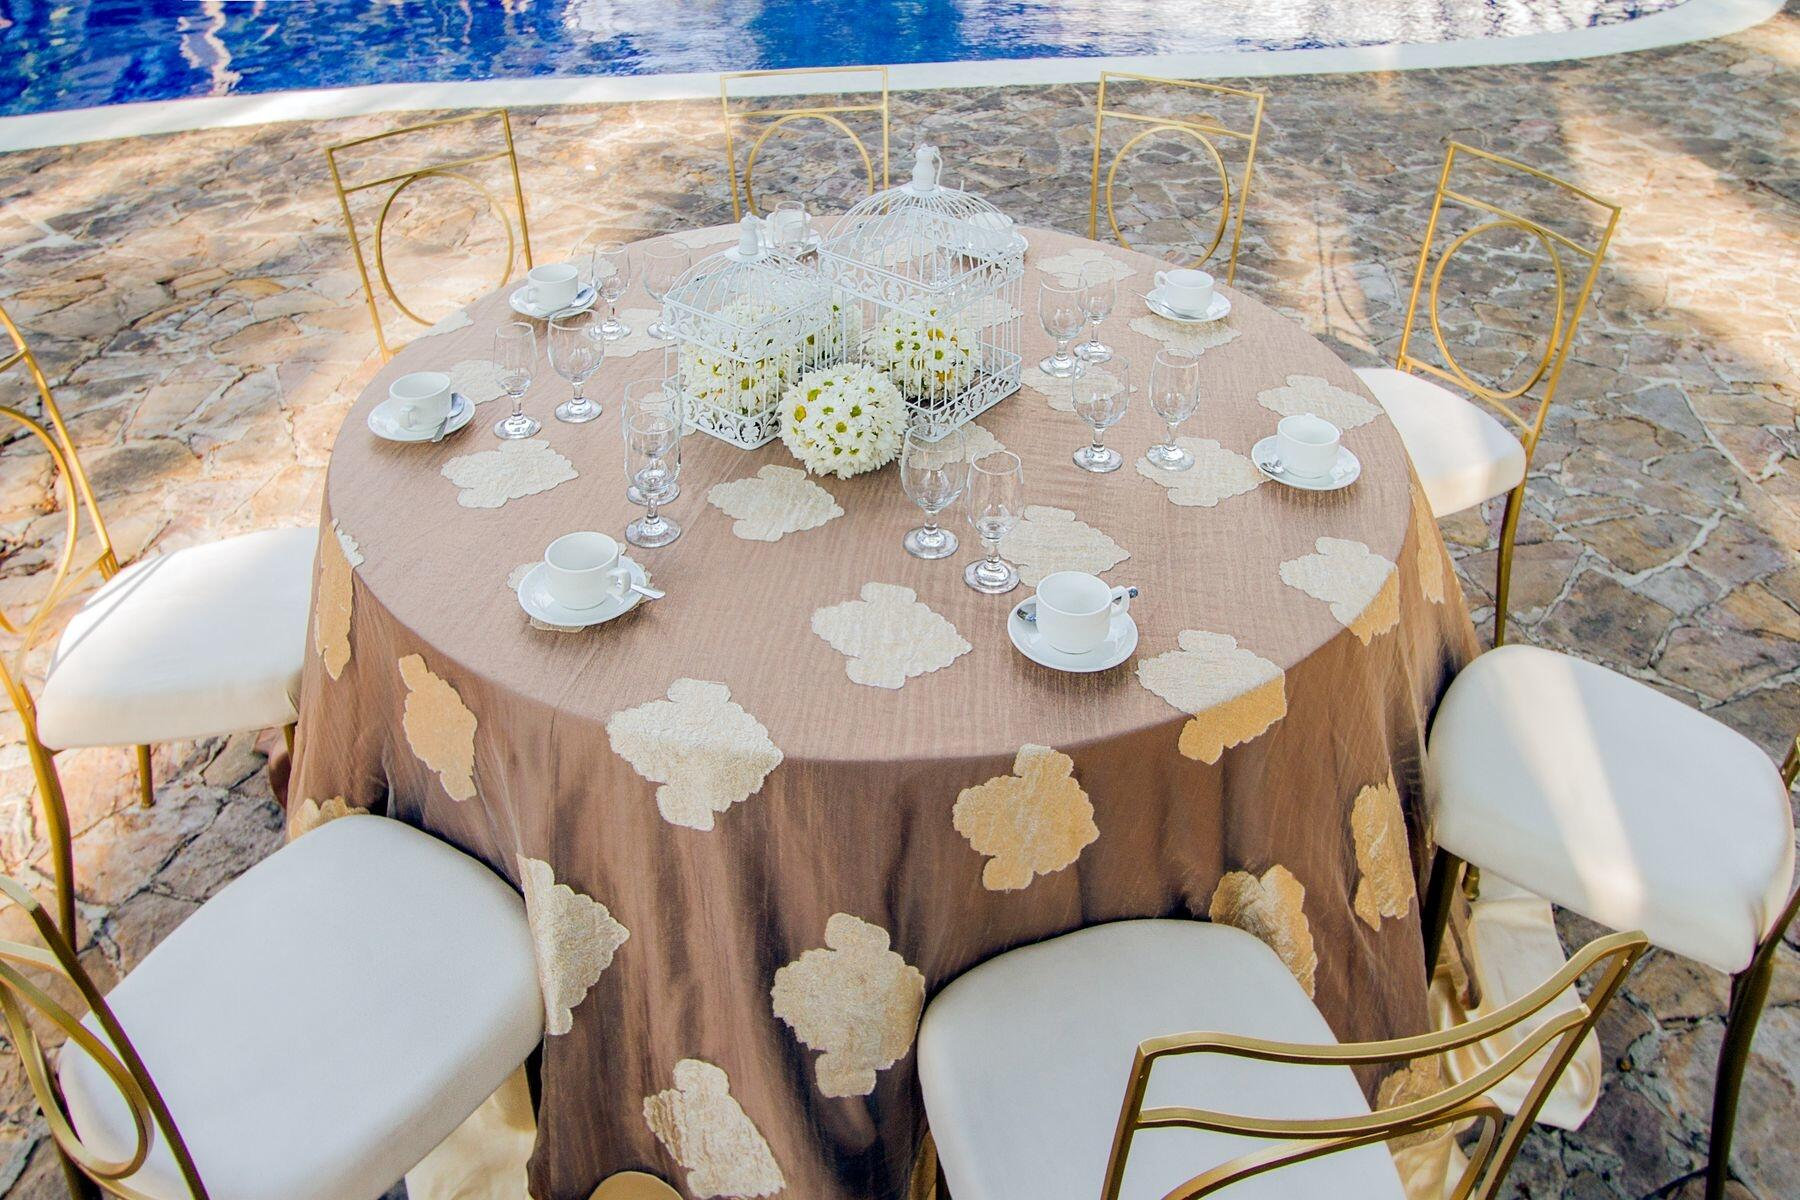 Patterned linens on banquet table set for wedding reception by p